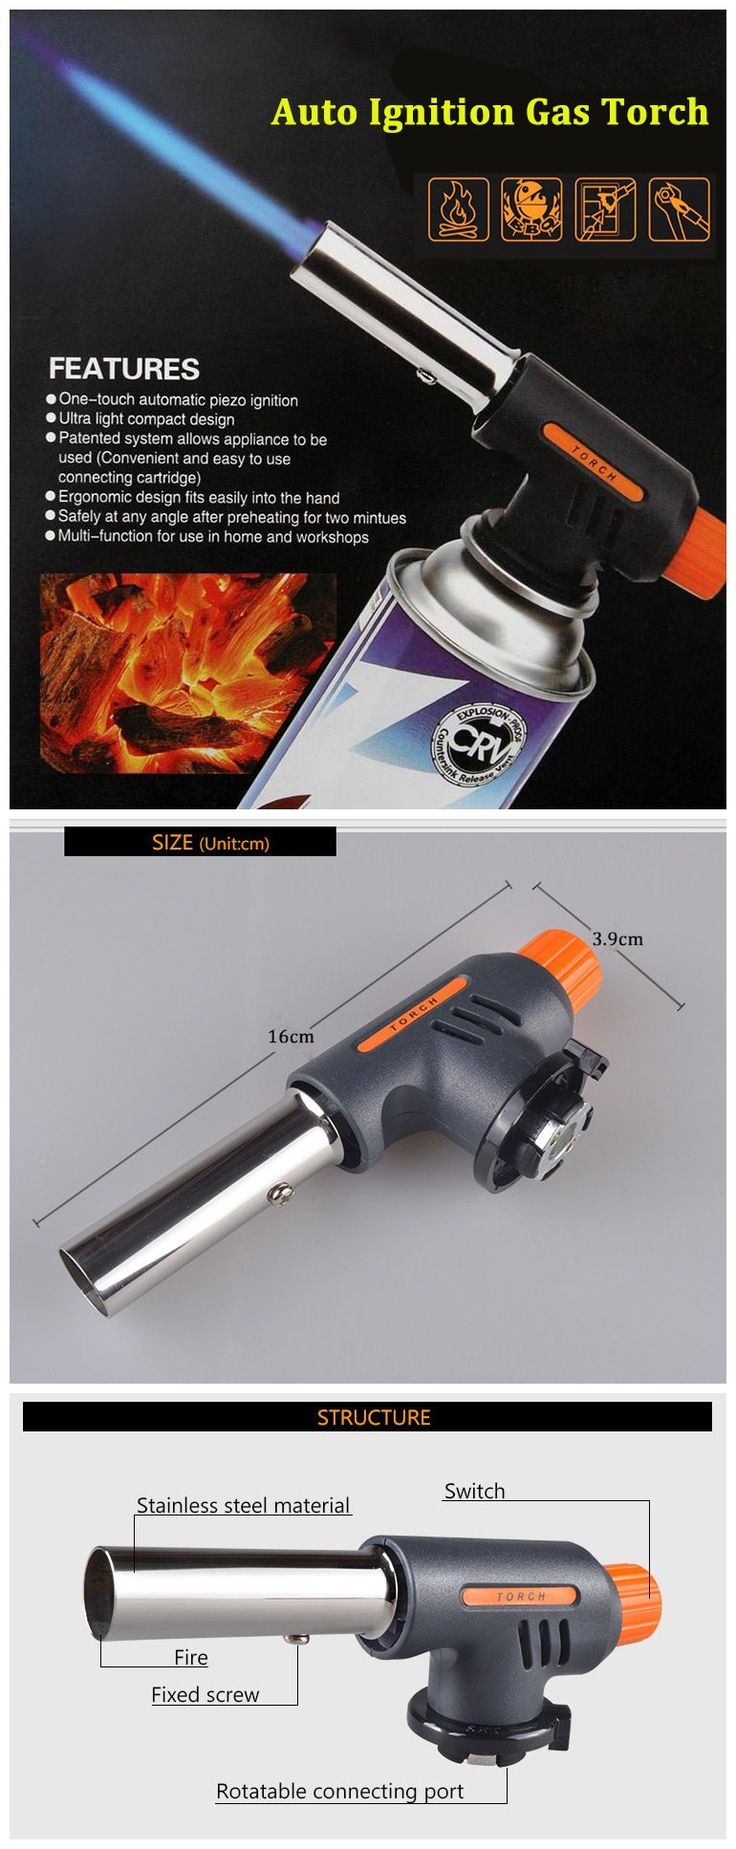 Auto Ignition Flamethrower Gas Torch Camping Welding BBQ Butane Burner Adapter